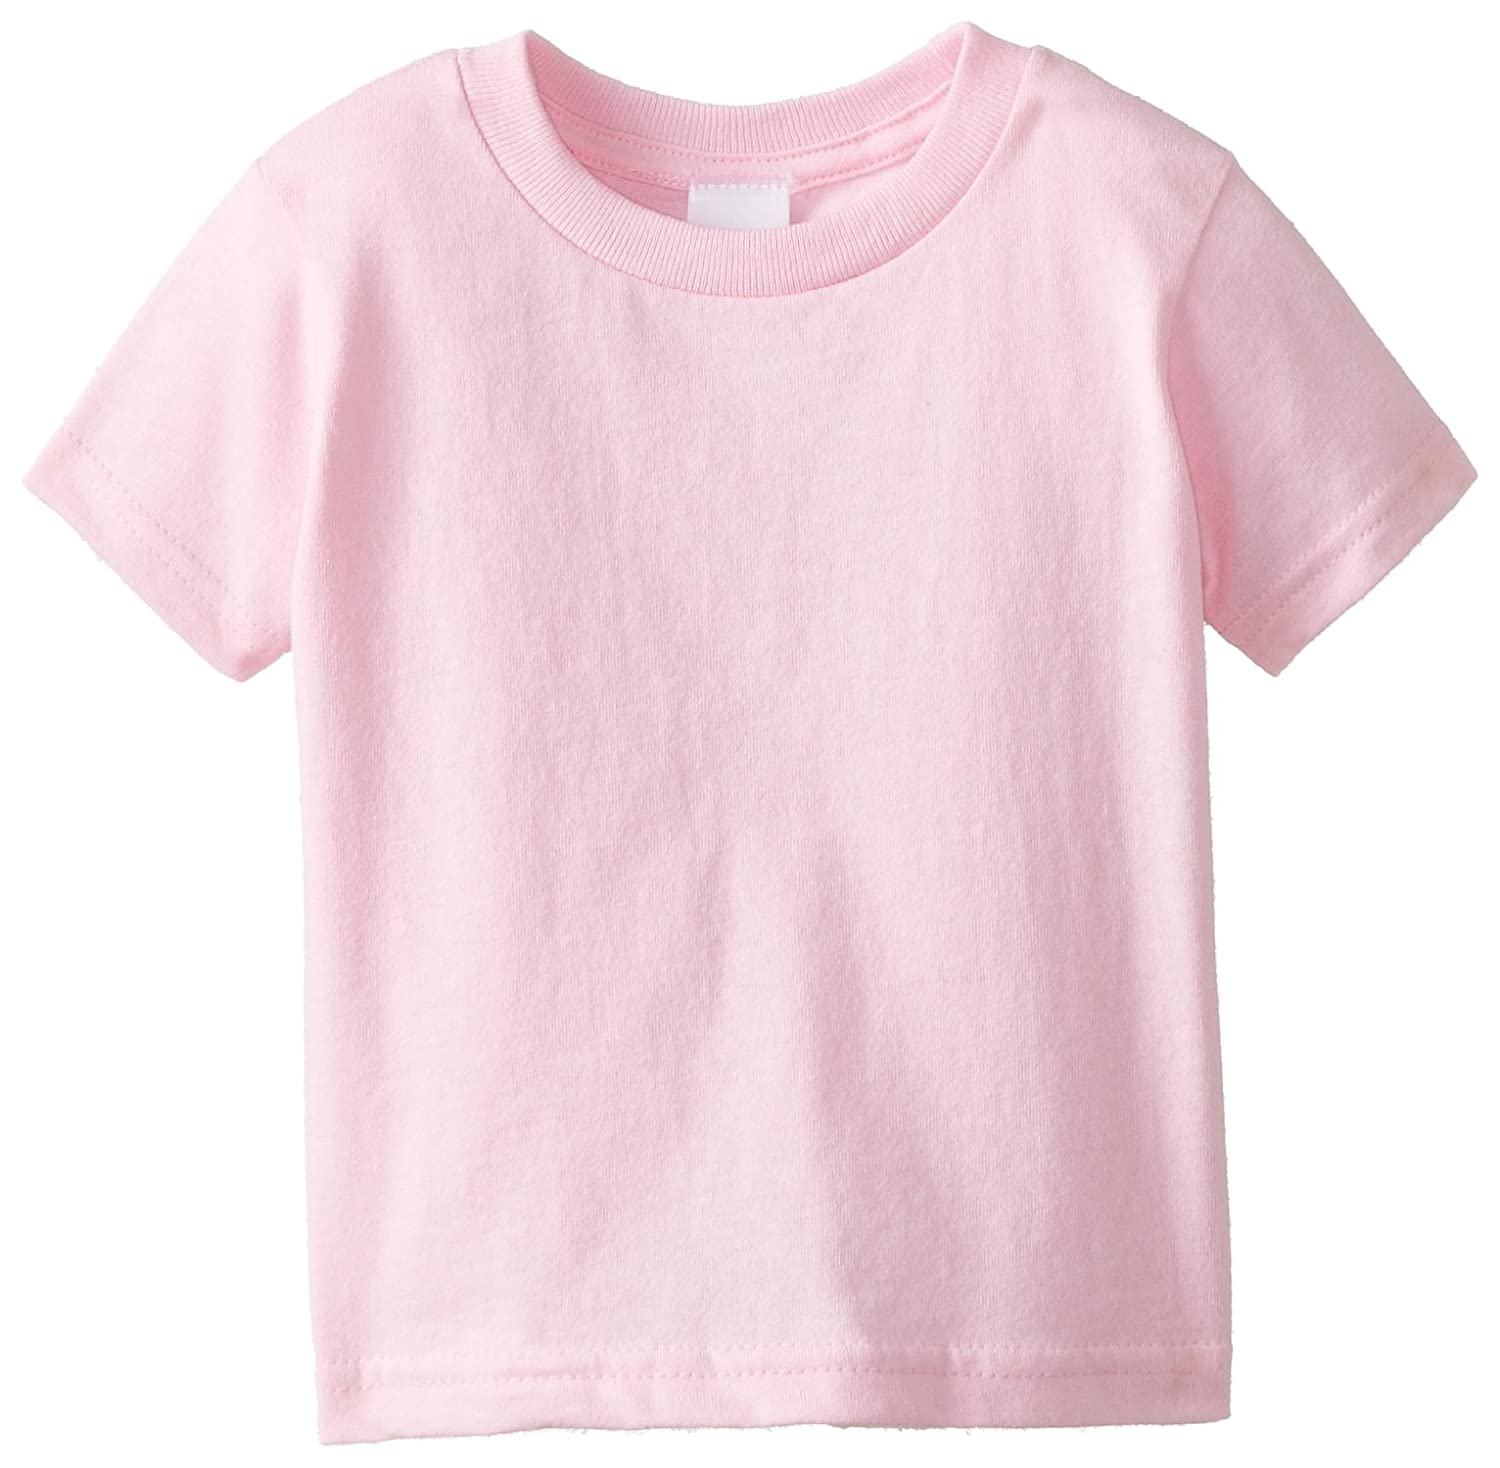 Clementine Apparel Little Girls Short-Sleeve Basic T-Shirt